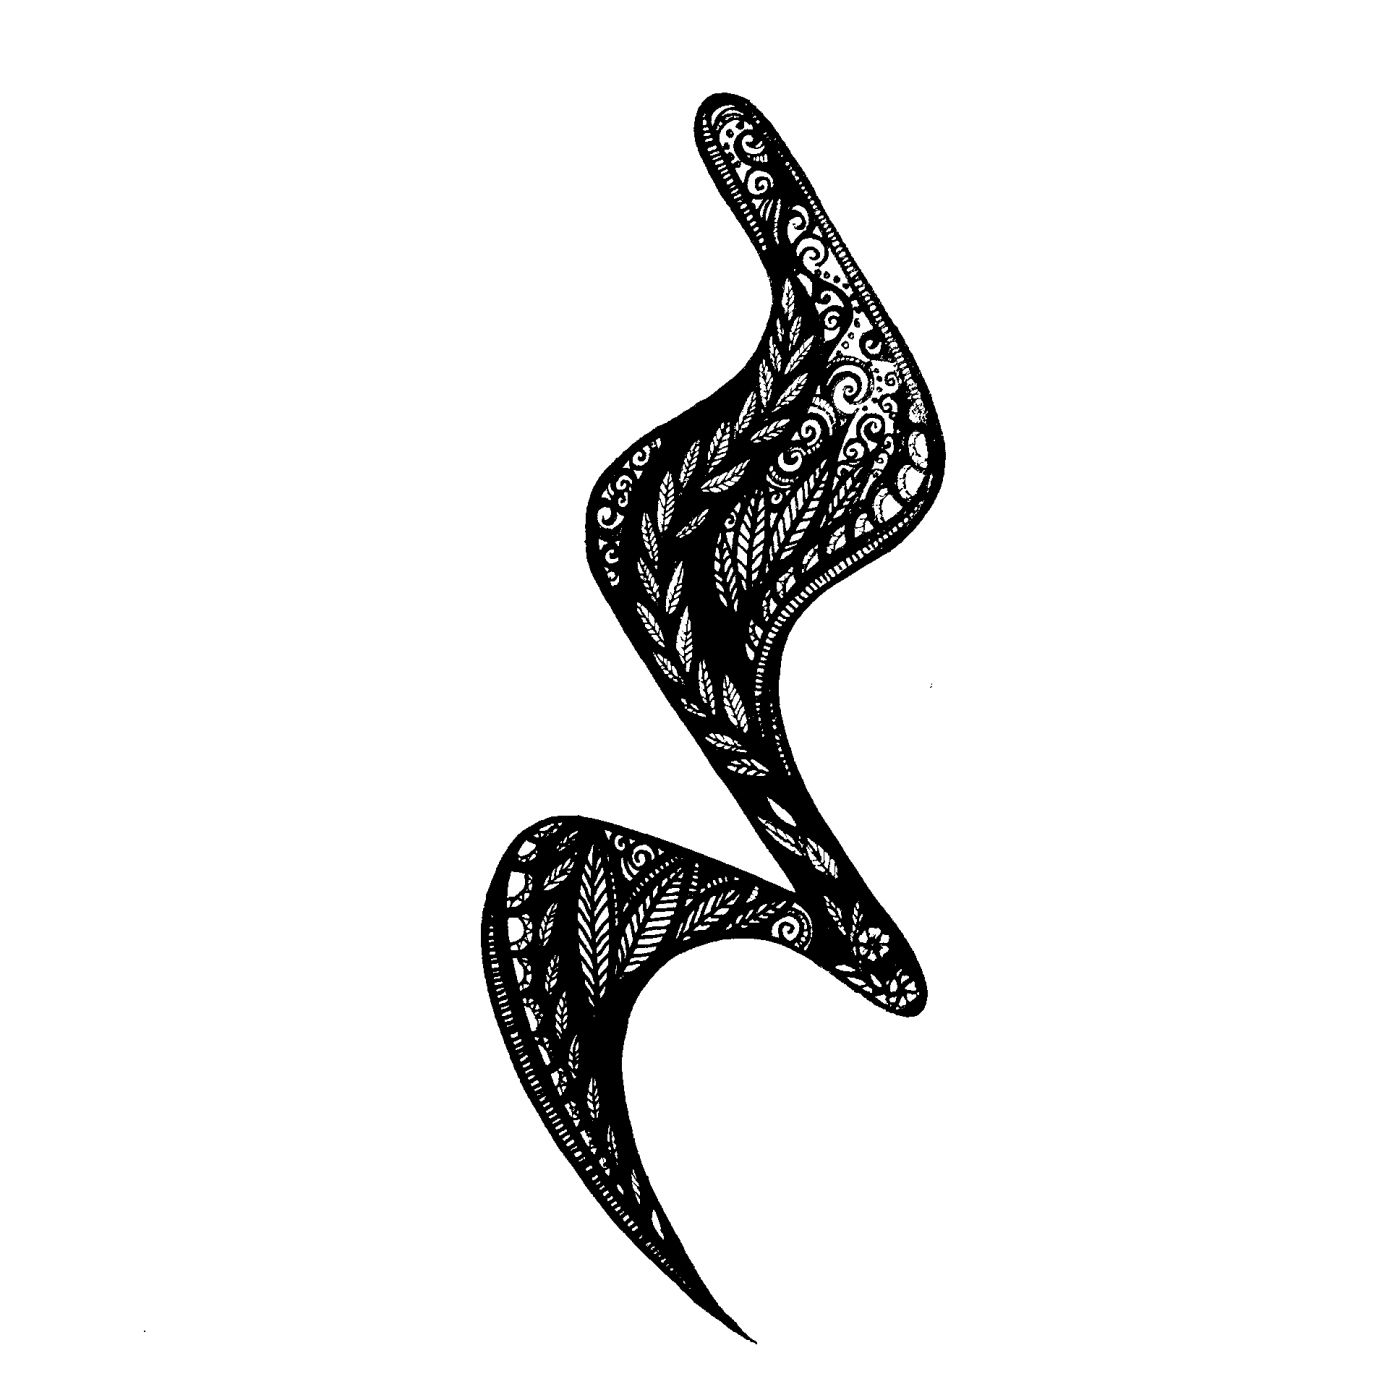 The Sound Of Silence In 2020 Tattoos Tribal Tattoos Crotchet